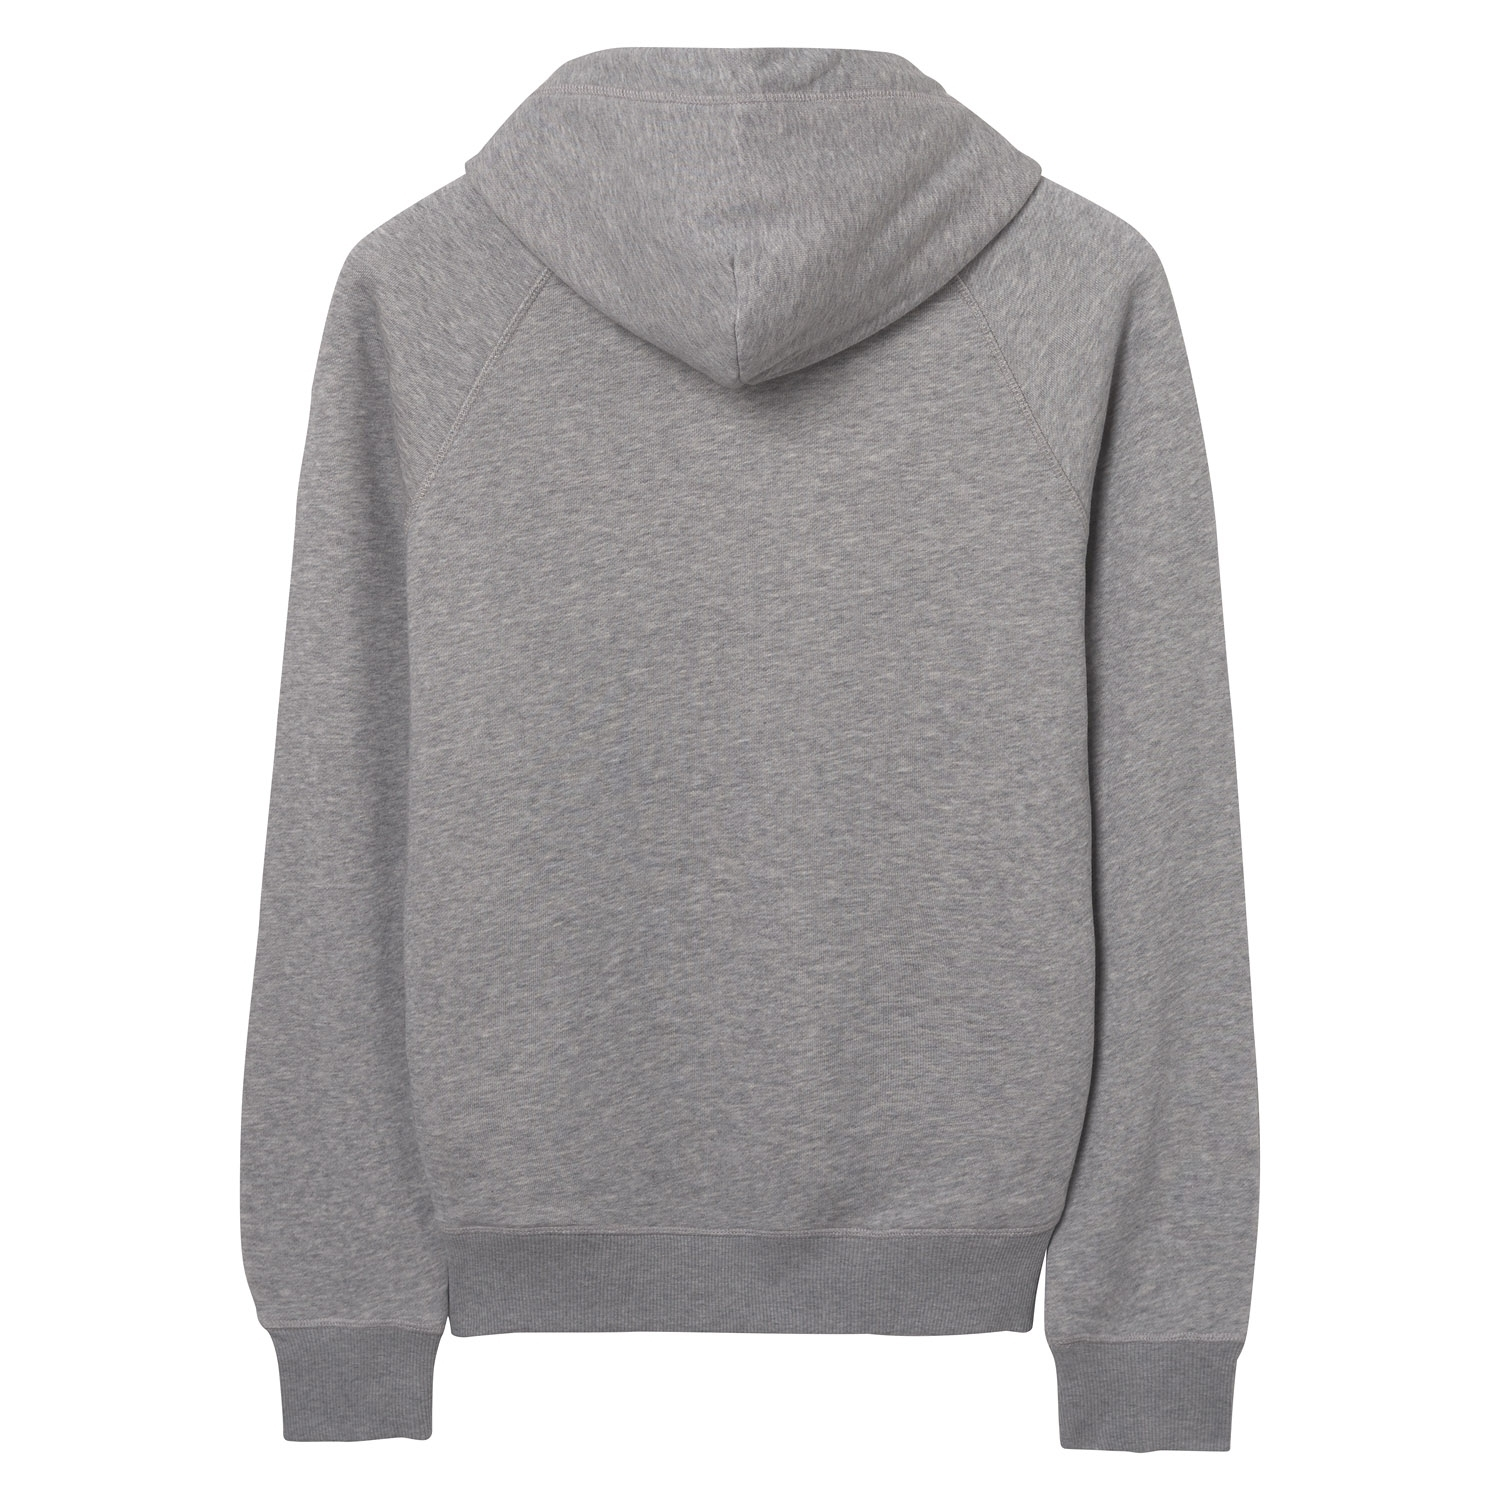 Gant Pullover m. Kapuze O1. GRAPHIC SWEAT HOODIE 2047039 GREY MELANGE SH18-GP5